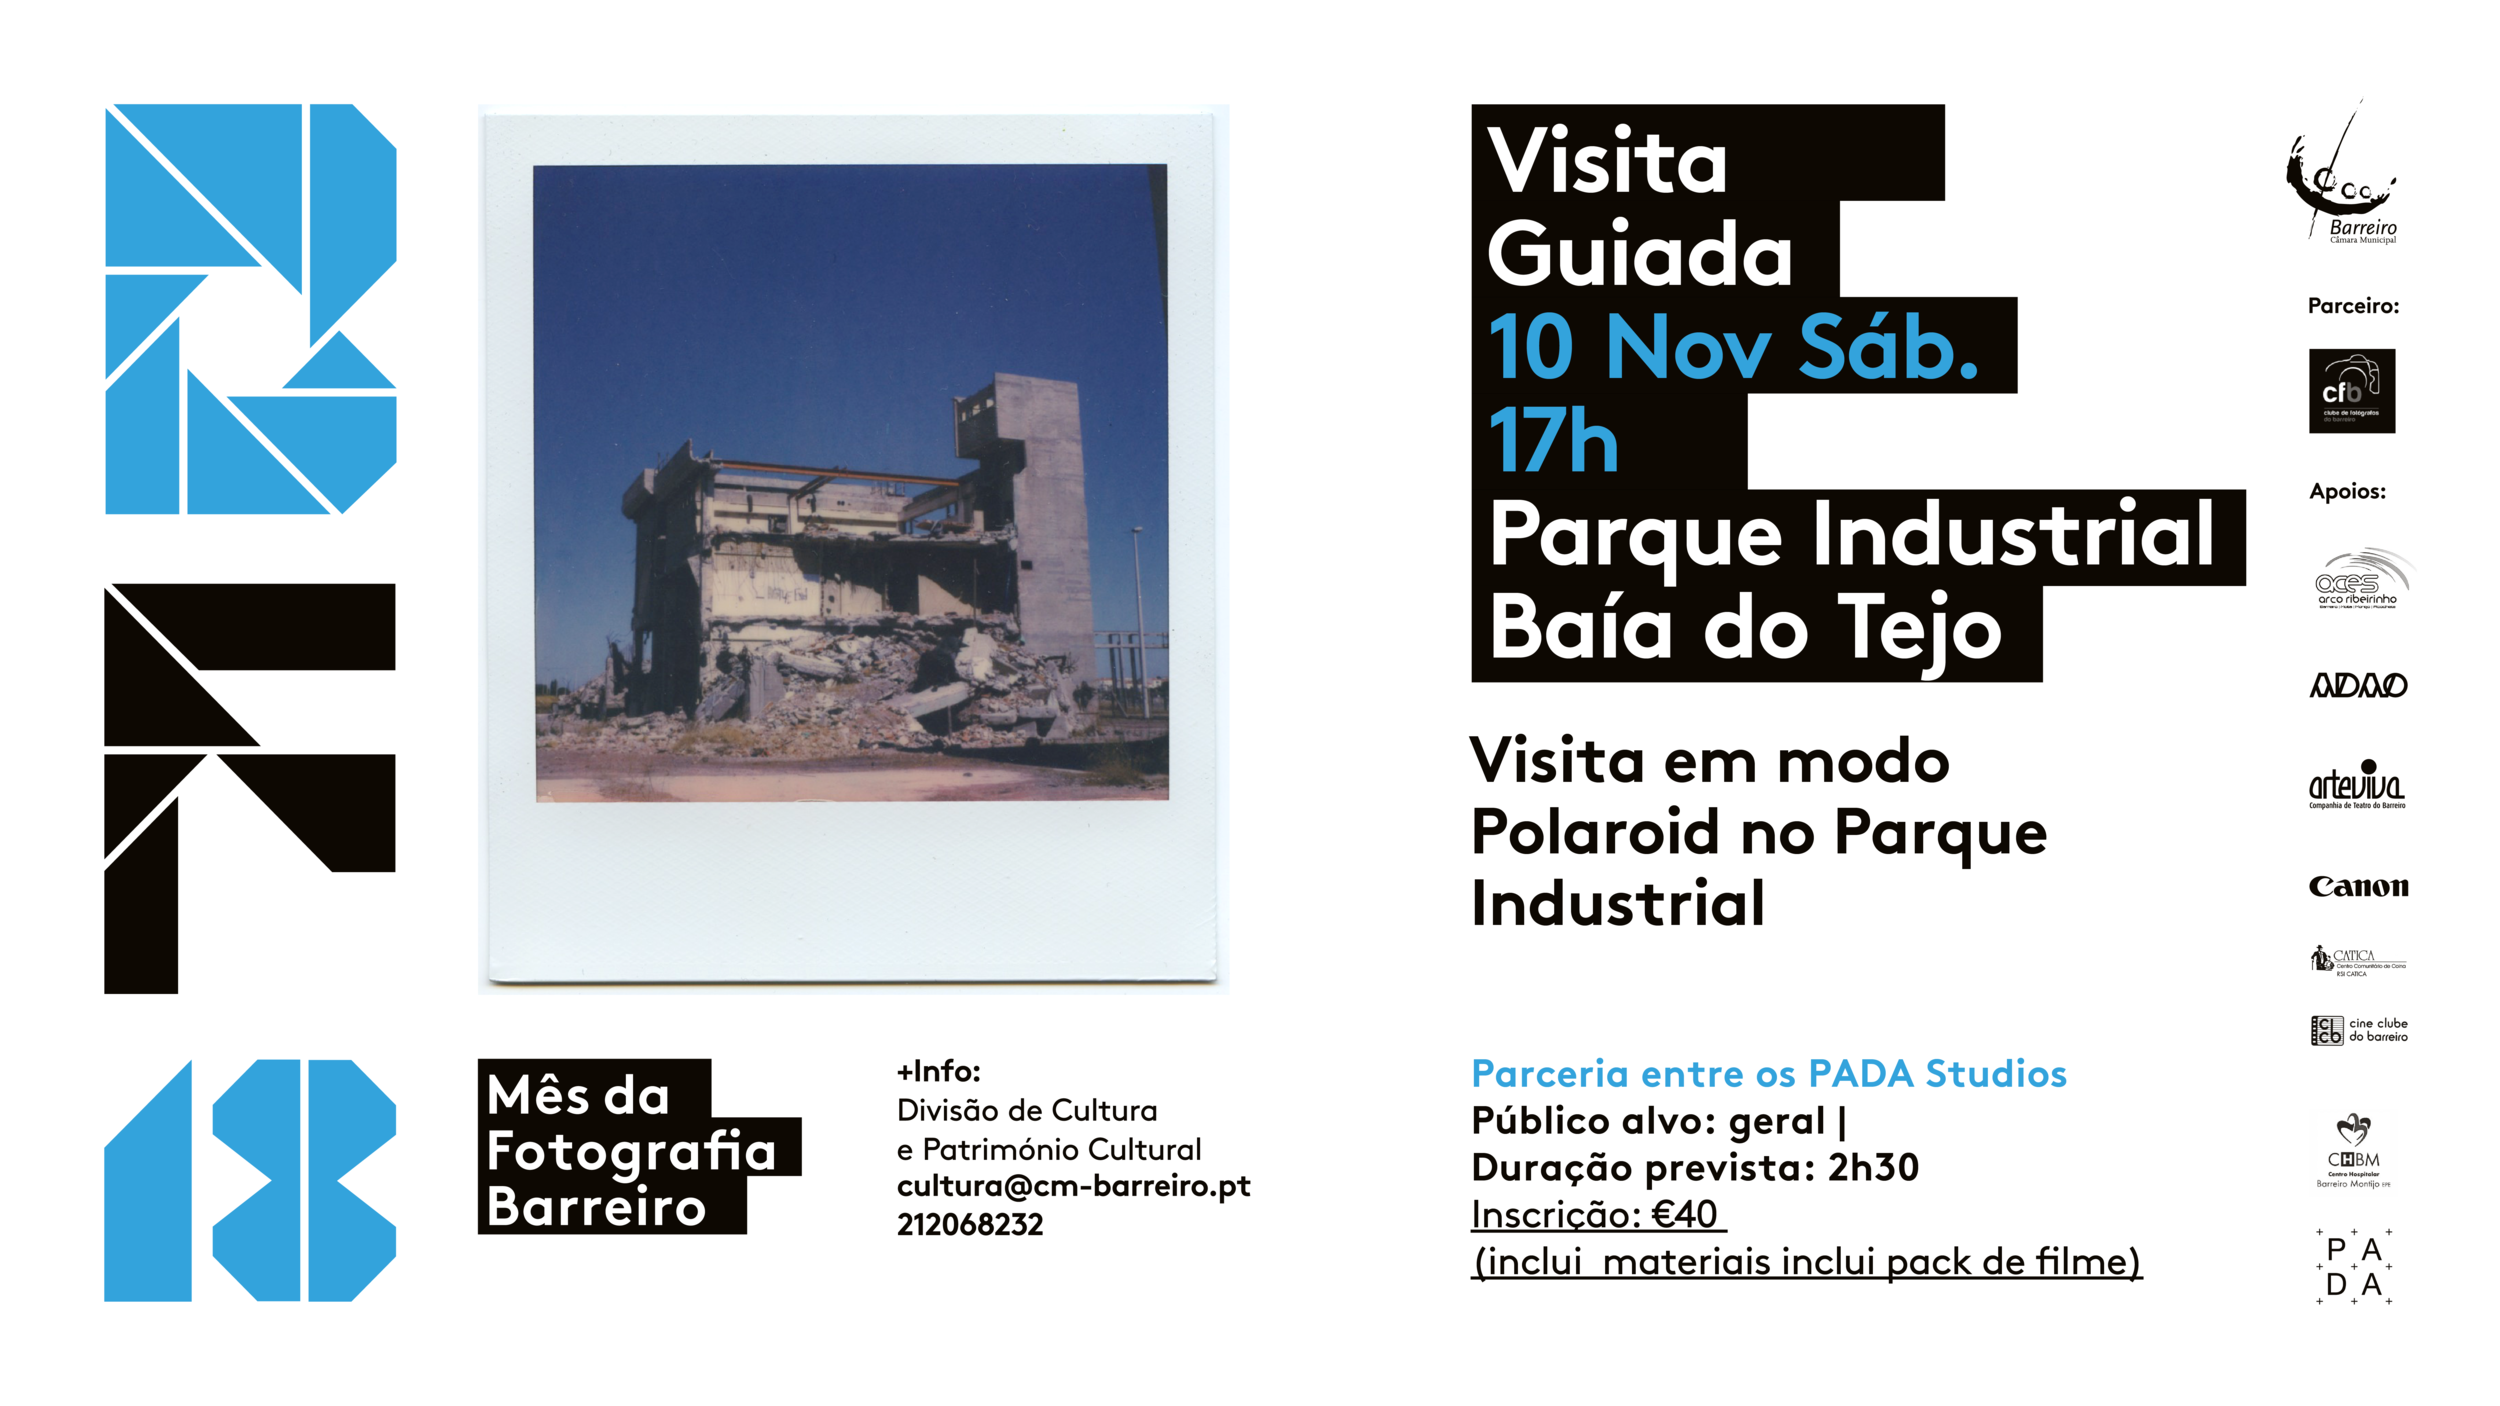 NOVEMBER 10th *Limited Places* Time TBC  A one-off special Polaroid tour of the historic industrial park of Barreiro (Parque Industrial Baía do Tejo) with exclusive access to areas not usually open to the public.  Join us at PADA Studios for a short introduction to the history of Polaroid photography from its inception to the present day. This will be followed by a technical introduction to vintage polaroid cameras and a tour of the industrial park where participants will each have their own polaroid camera and a fresh pack of colour film (8 pictures).  The tour is run as part of Mês da Fotografia Barreiro in conjunction with  PADA Studios  who have recently opened studios and a gallery in the Baía do Tejo Industrial Park.  The Industrial park itself dates back over 100 years when it's founder Alfredo da Silva decided to expand the company CUF from Alcântara in Lisbon over to the city of Barreiro. It comprises now of many factories and buildings in disrepair, many of which ceased to do business in the 1980s but is also home to new businesses and is in the process of an exciting redevelopment which  PADA Studios  is now part of. The complexion of the park changes daily as it continues to develop so this is a great chance to see it as it is now before more buildings are demolished and/or renovated.   Tickets can be booked at  analogtours.com  using PayPal.  If you'd like to pay in cash then feel free to visit us at  PADA Studios  , email info@analogtours.com and it can be arranged.